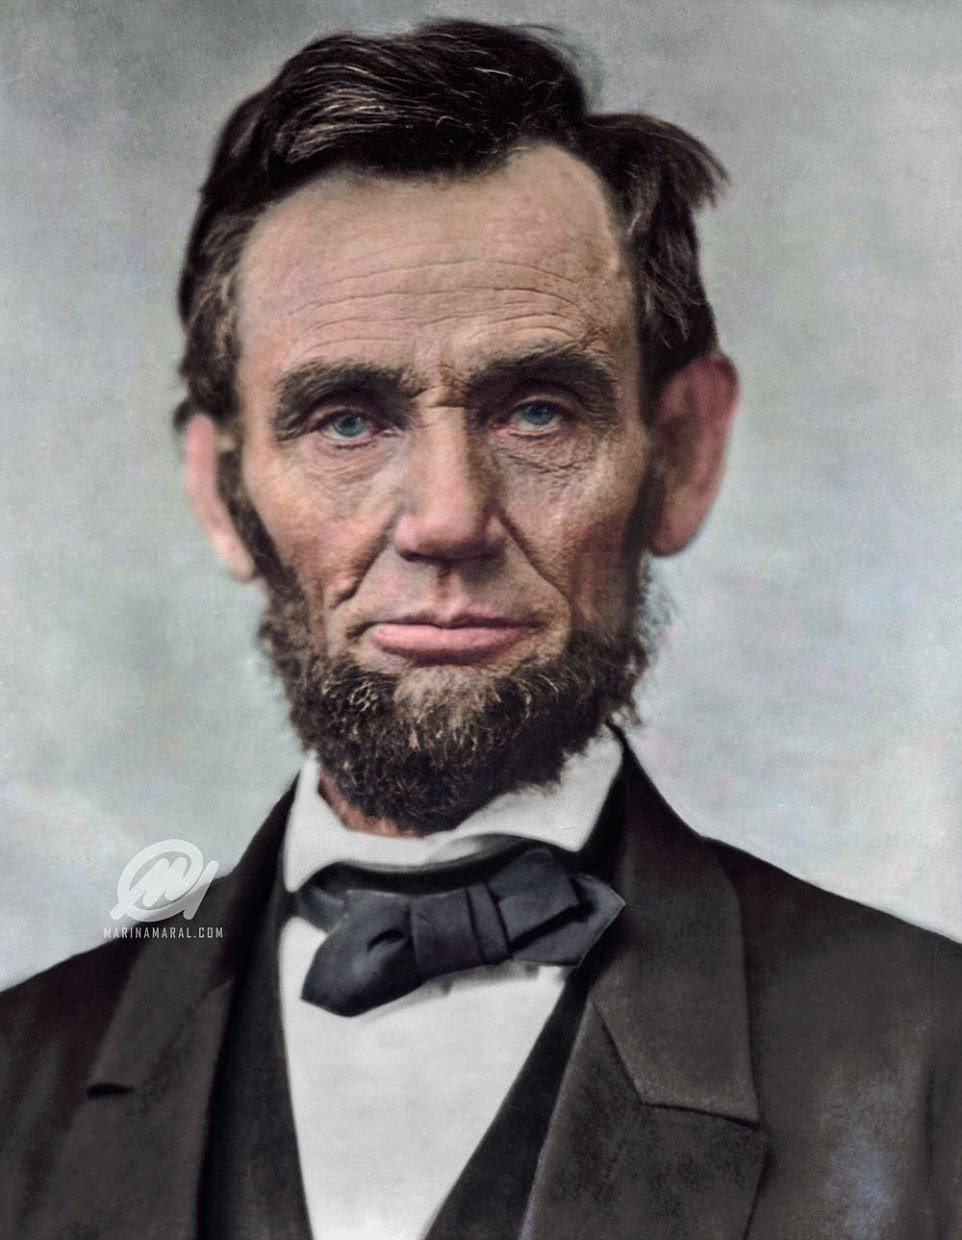 Moderniser: The 16th President of the United States, Abraham Lincoln, served from March 1861 until his assassination in April 1865. Lincoln is pictured here in 1863 at the age of 54